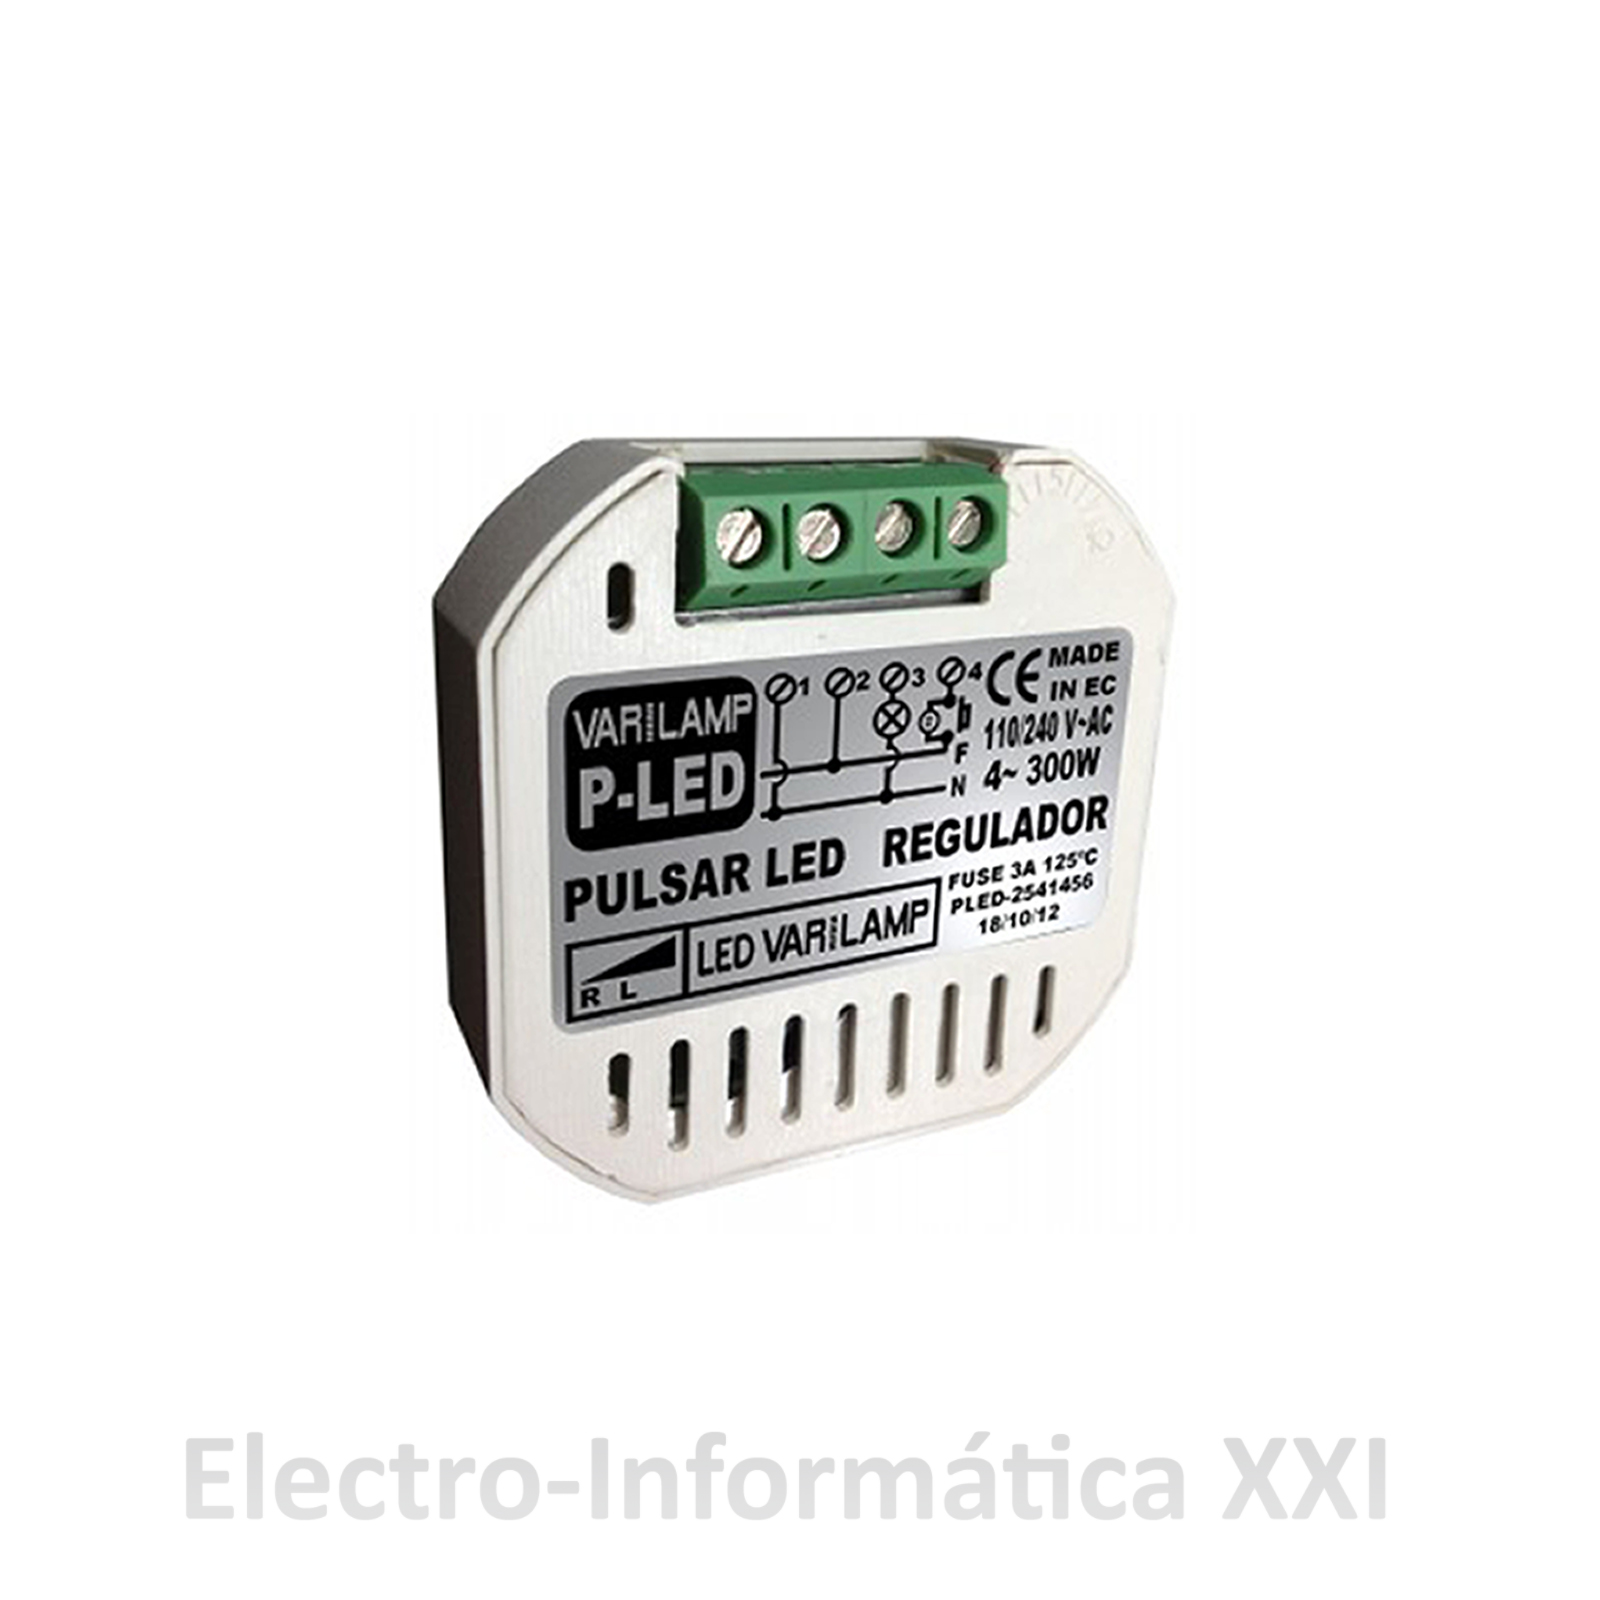 Regulador de intensidad para lamparas led varilamp pulsar - Regulador intensidad luz ...